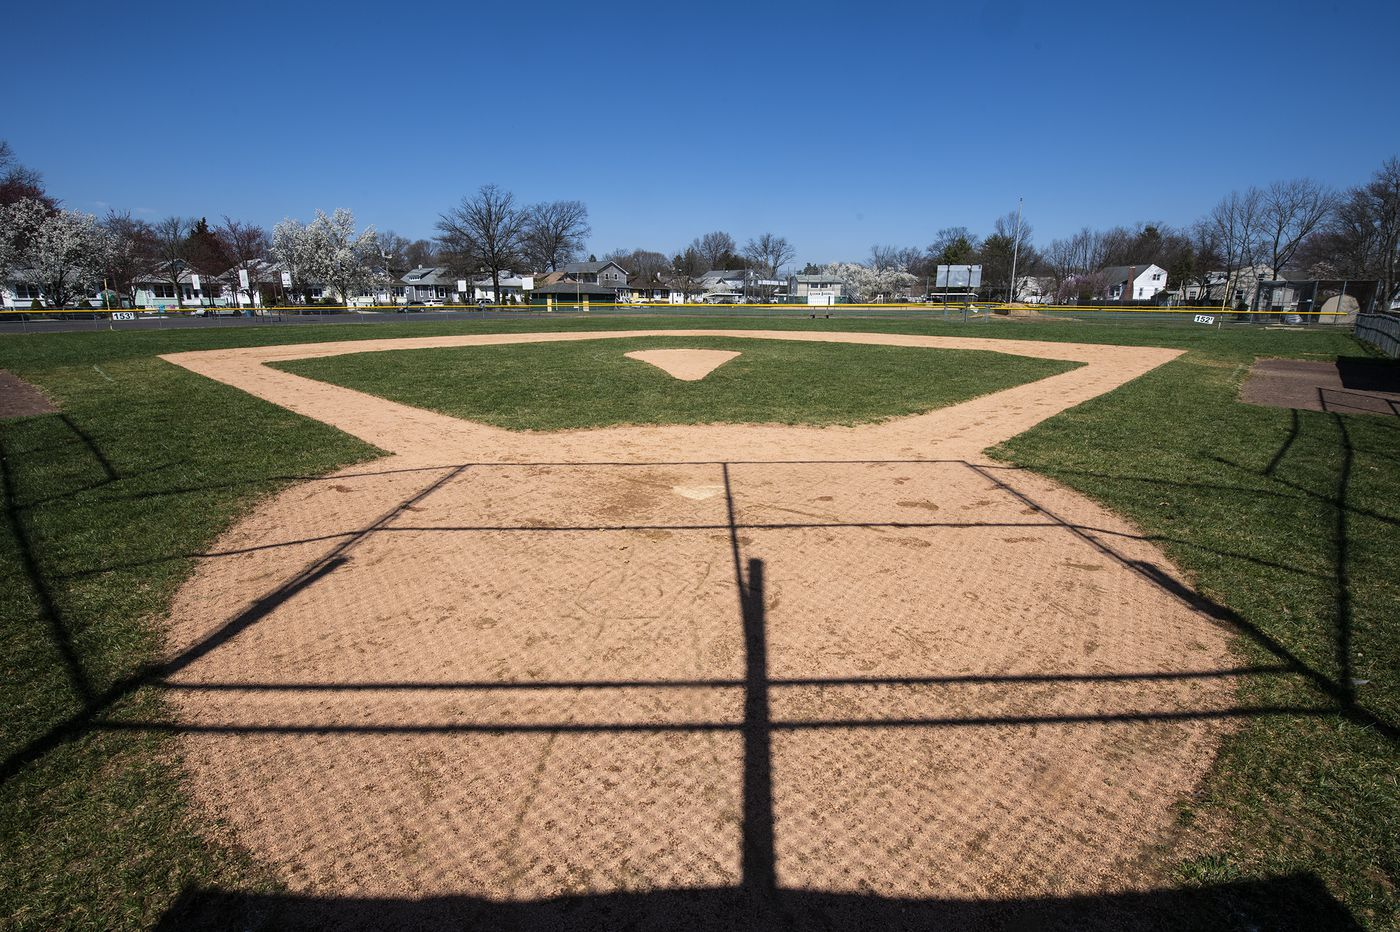 Missing high school baseball even on the coldest days | Phil Anastasia